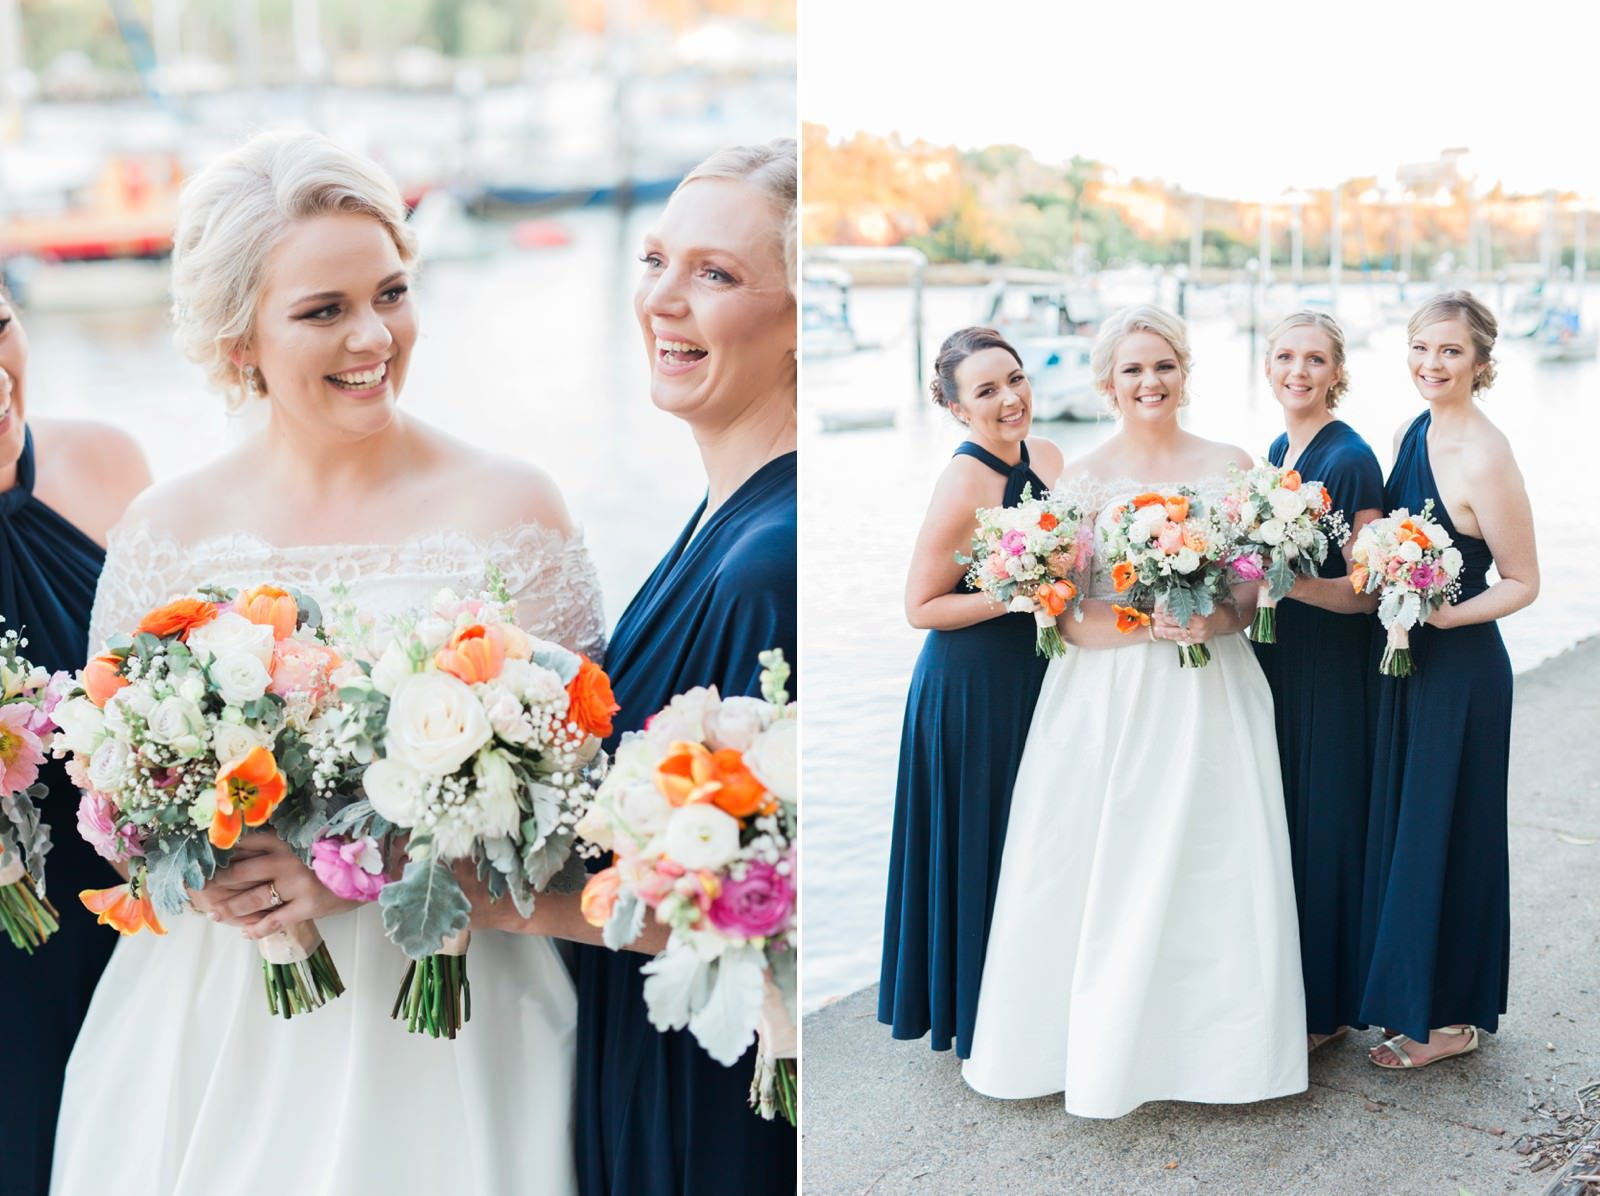 Kookaburra Queen Brisbane wedding by Mario Colli Photography